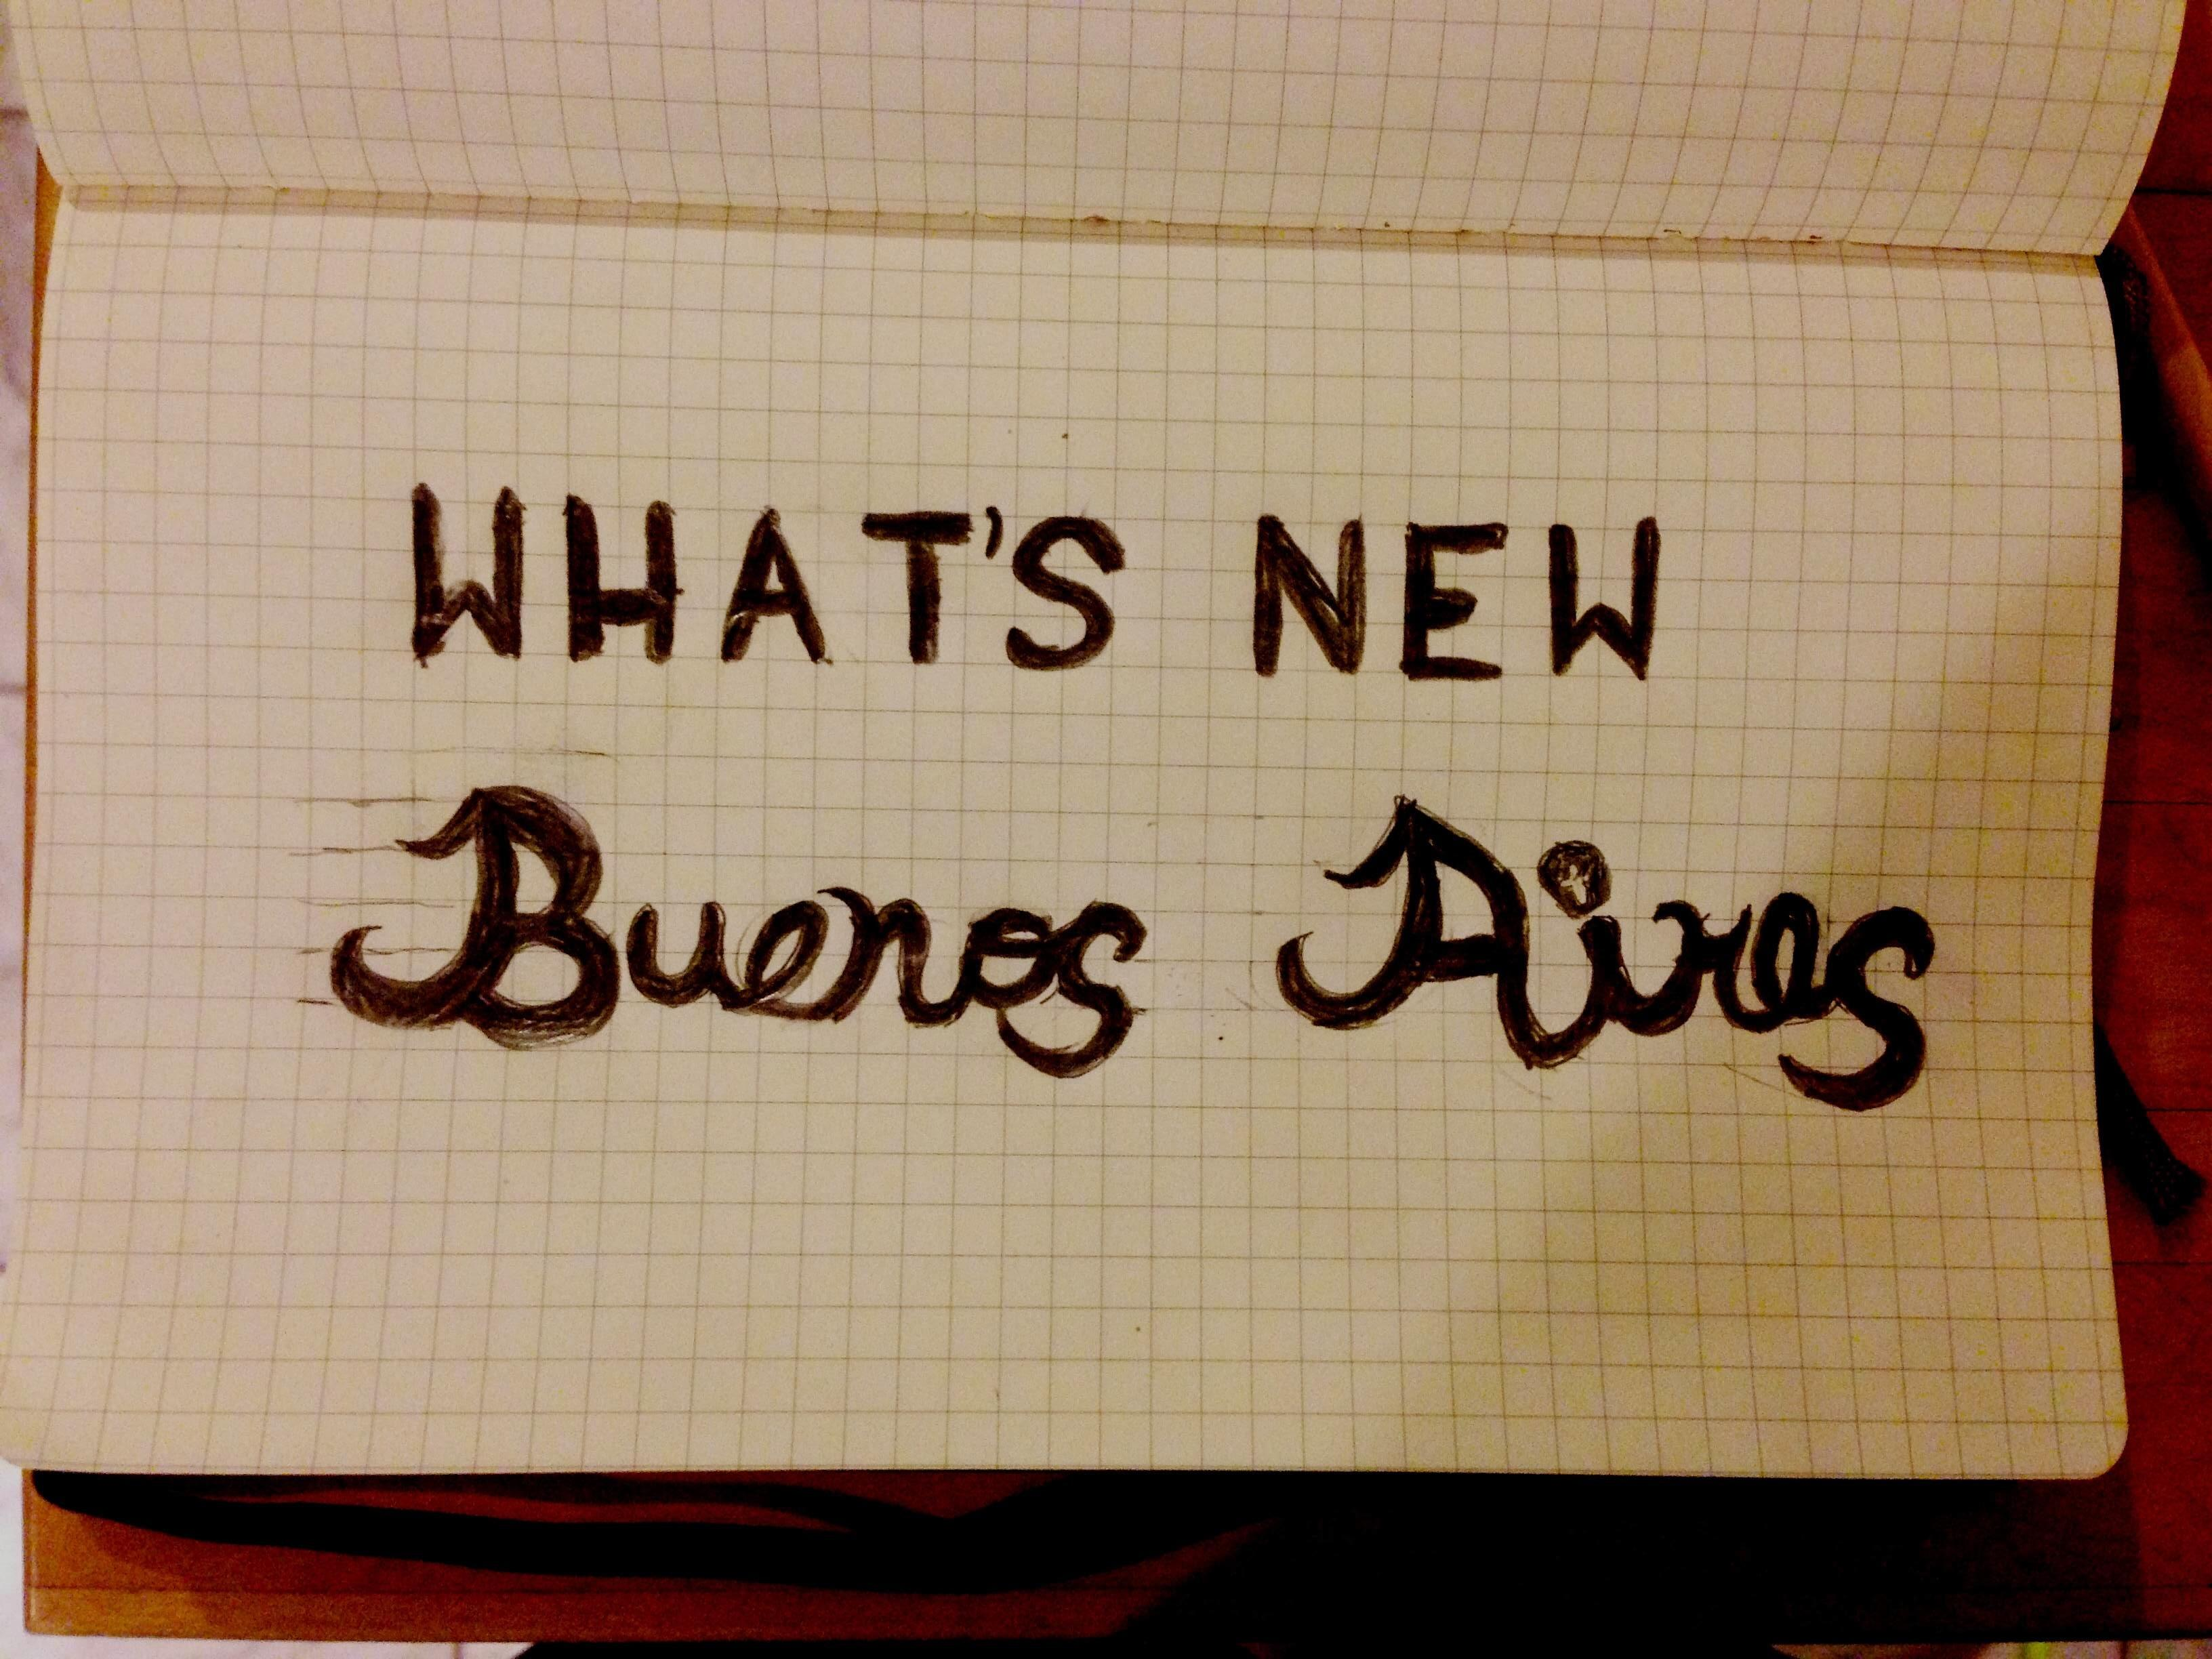 What's New Buenos Aires - image 1 - student project